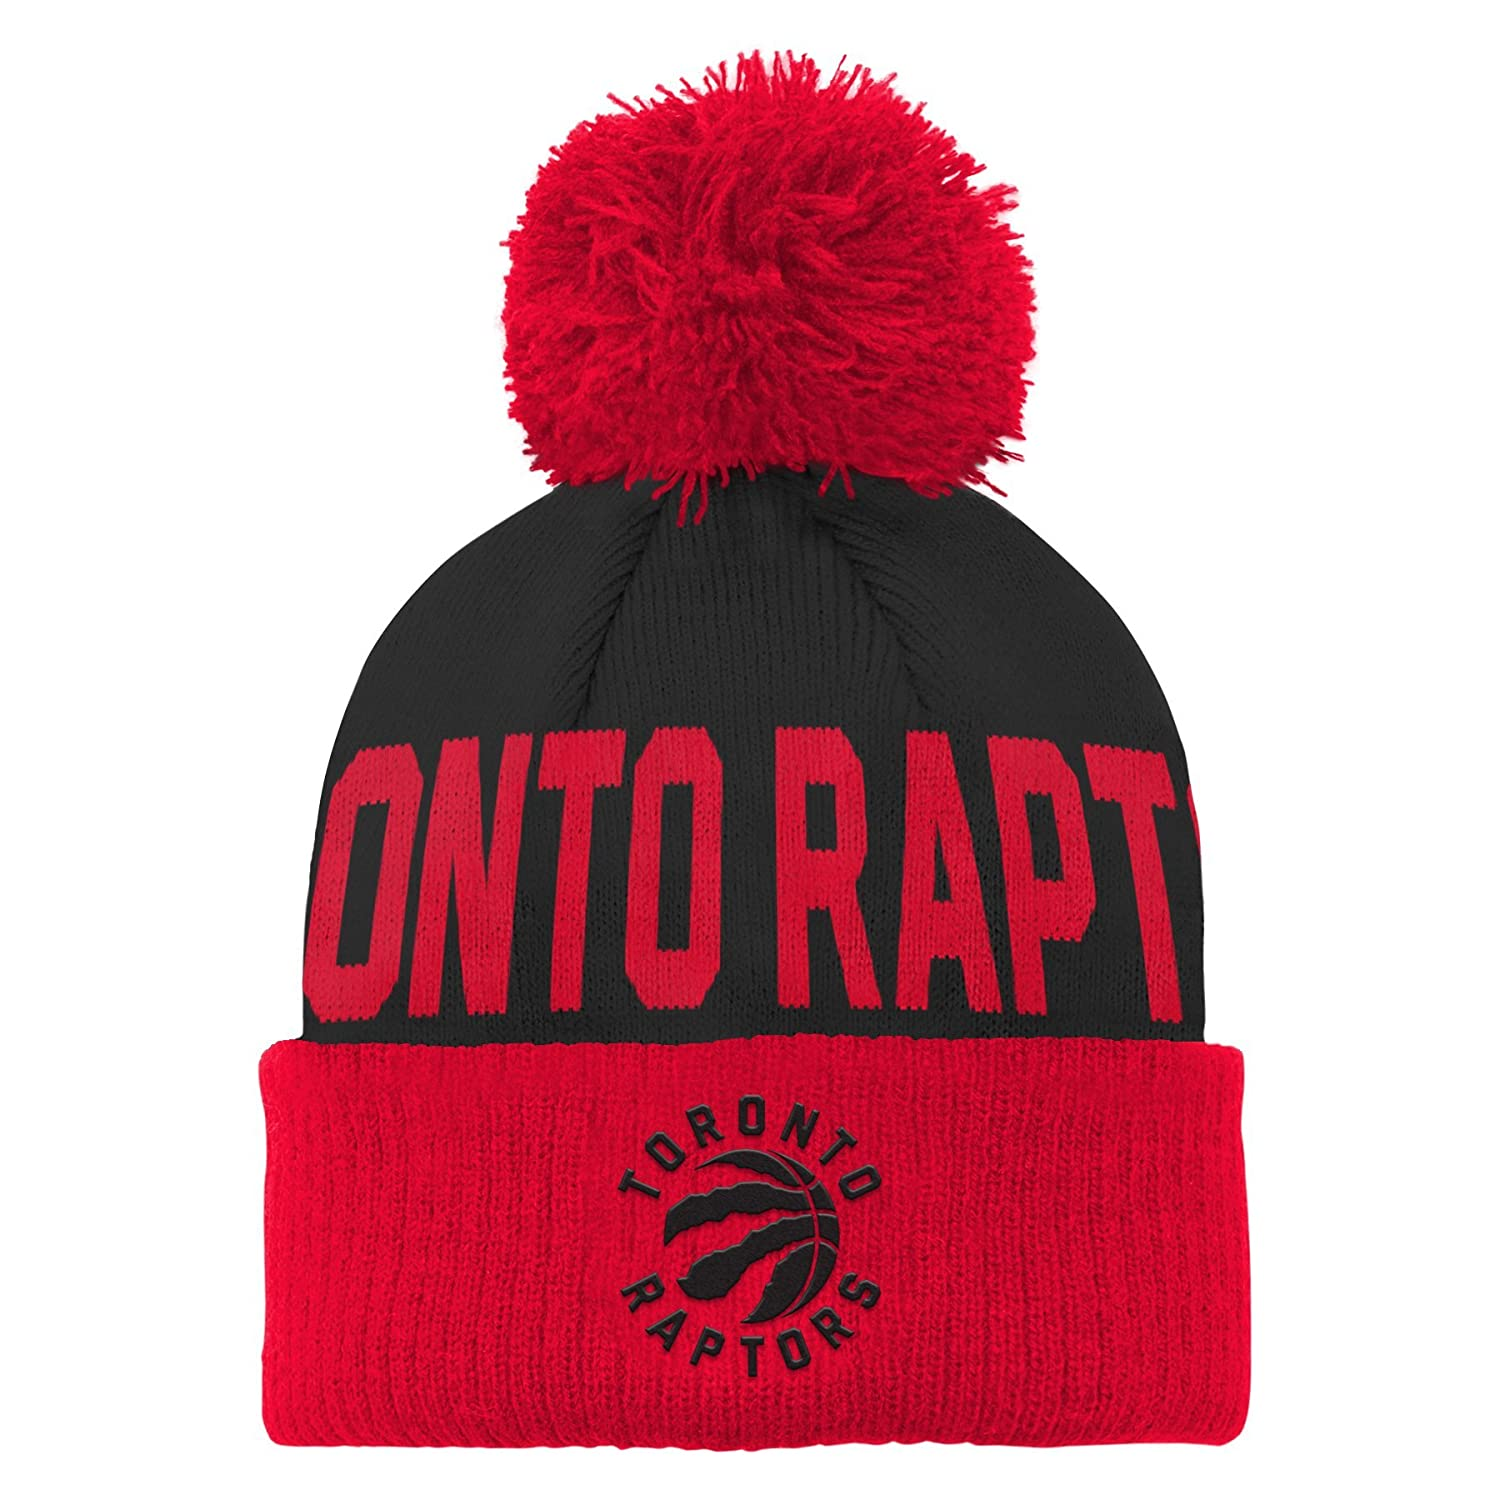 66c99616d78 Amazon.com : NBA Toronto Raptors Children Boys Cuffed Knit with Pom Hat, 1  Size, Black : Sports & Outdoors